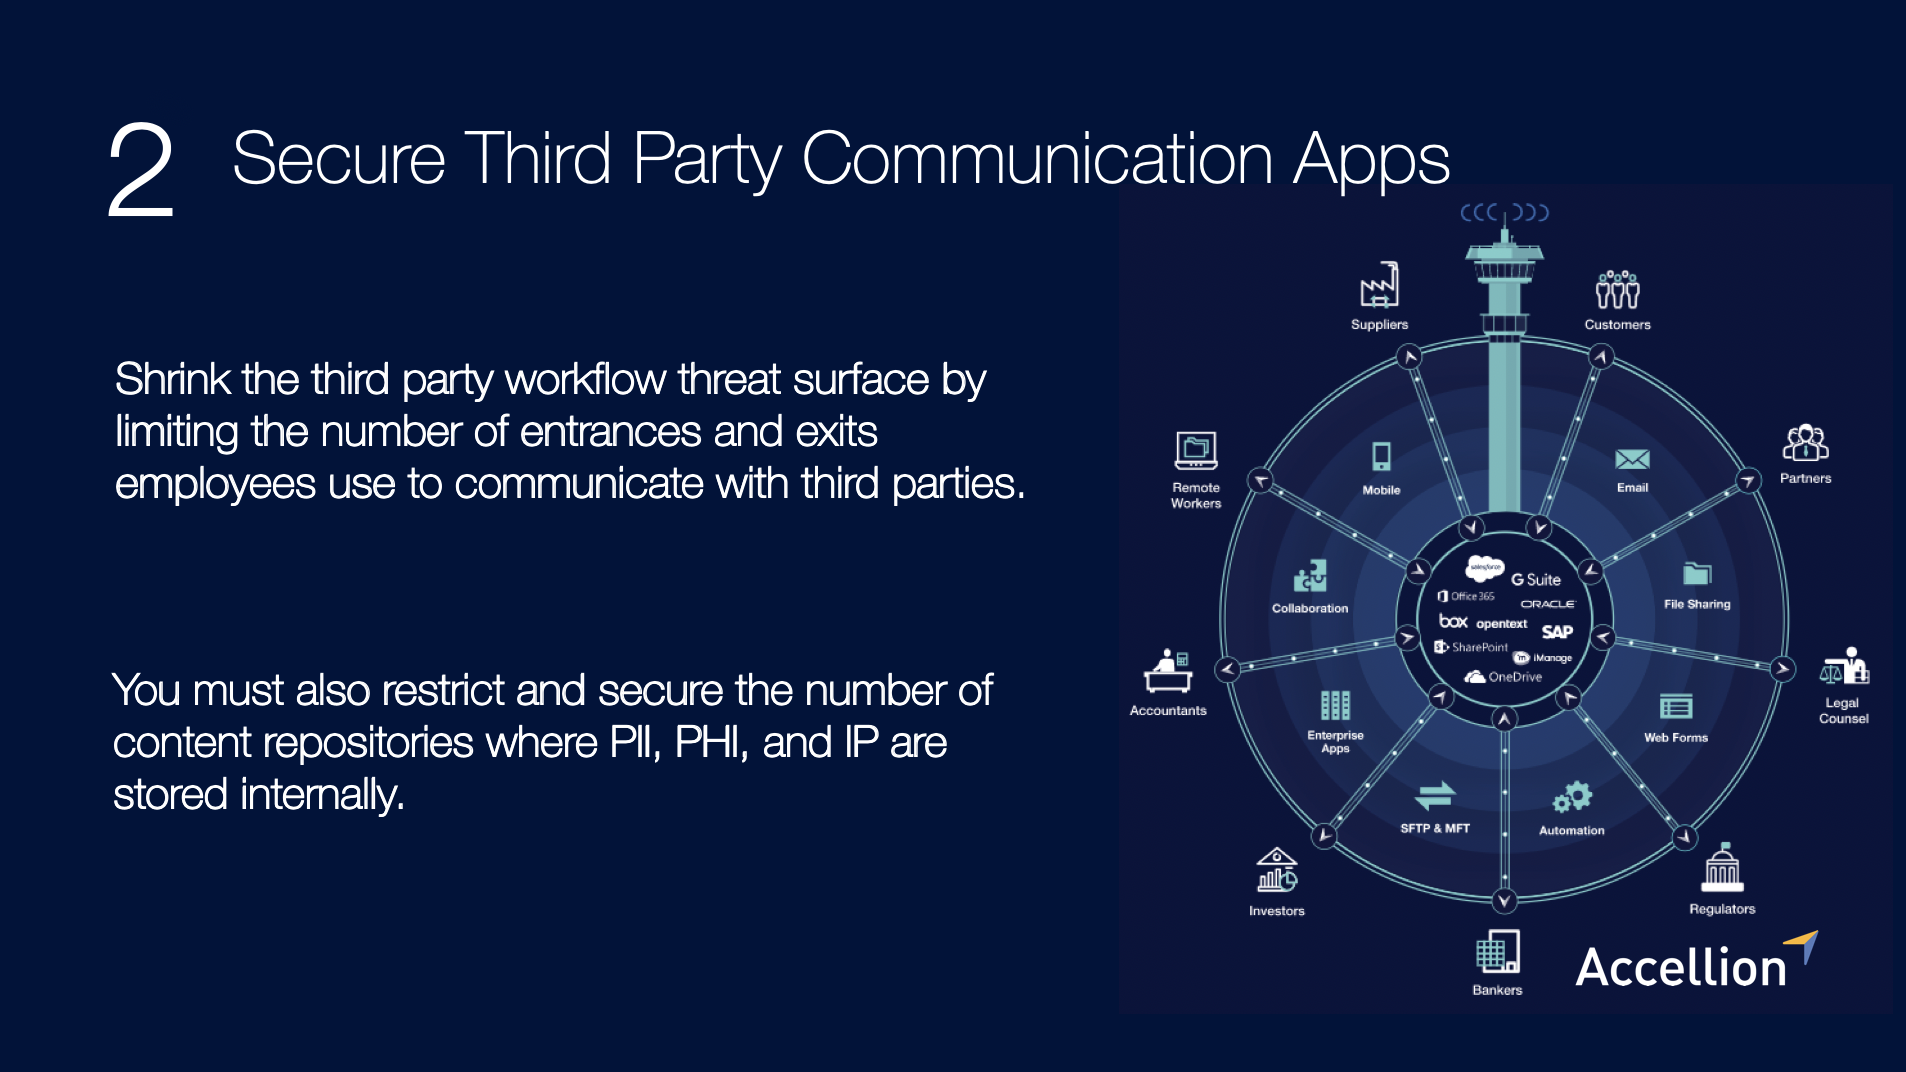 Secure Third Party Communication Apps